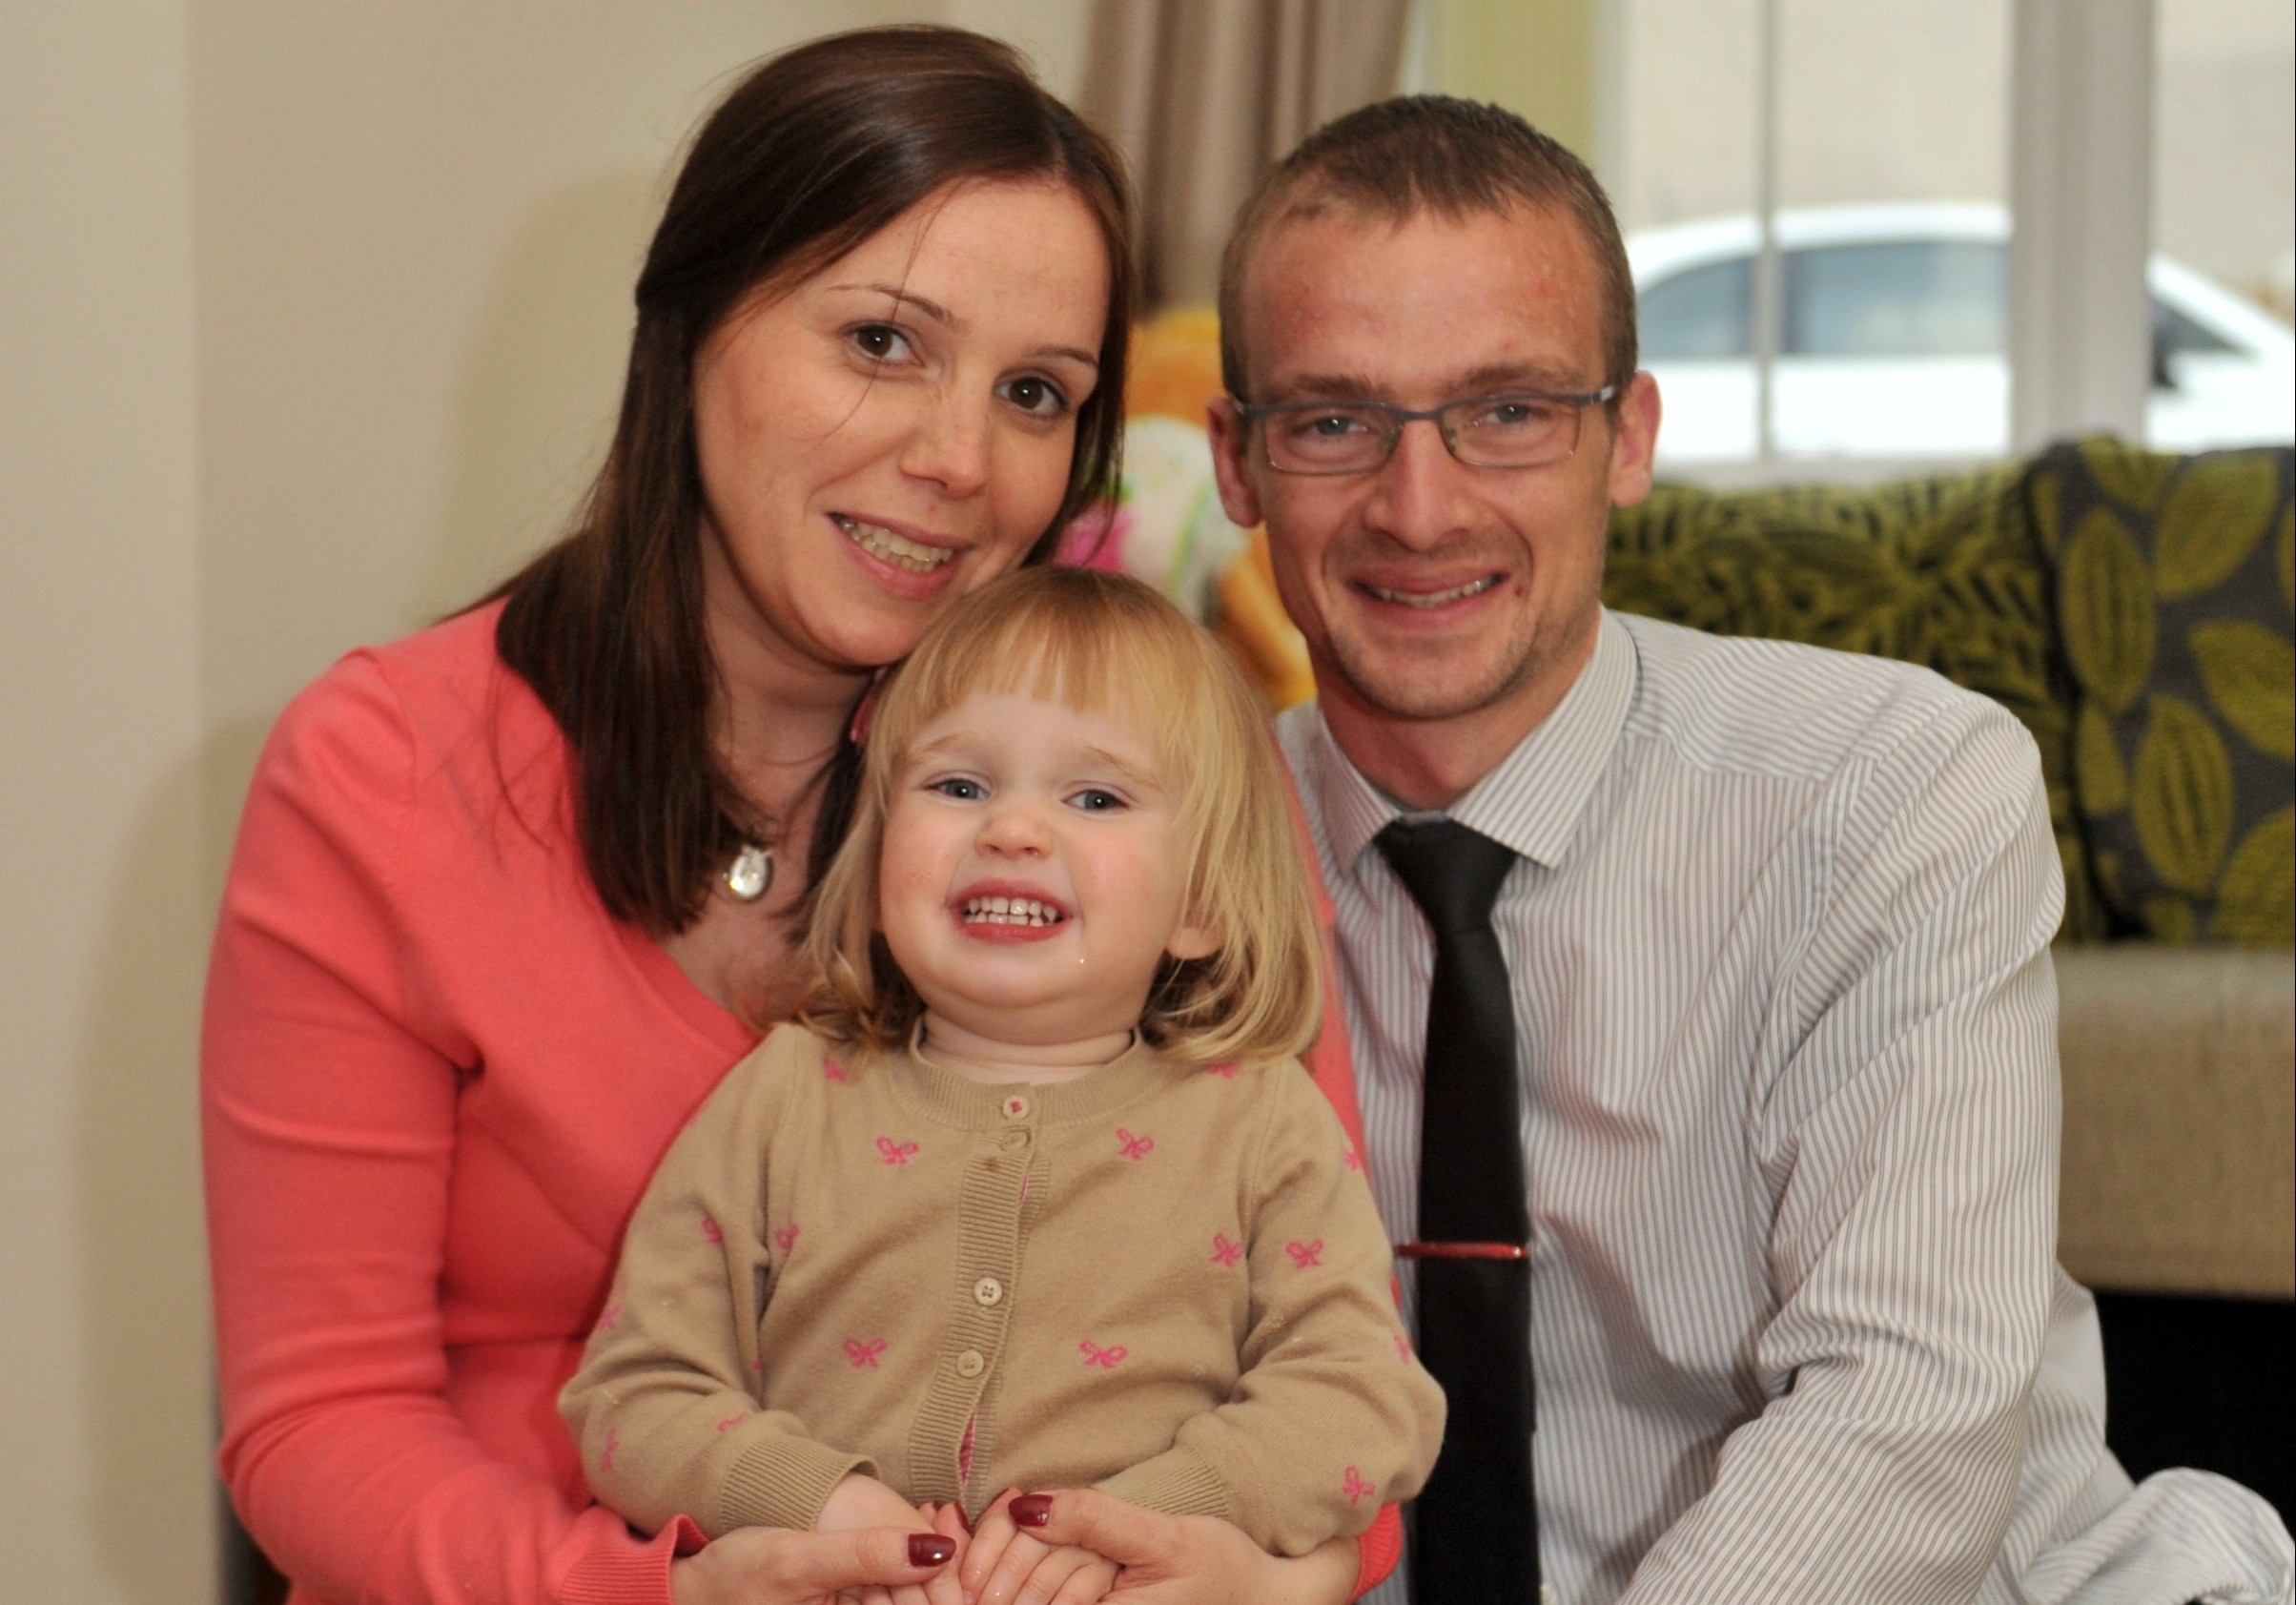 CHARITY CHAMPIONS: Anna and Jonathan Cordiner at home in Oldmeldrum with their two-year-old daughter Charlotte.